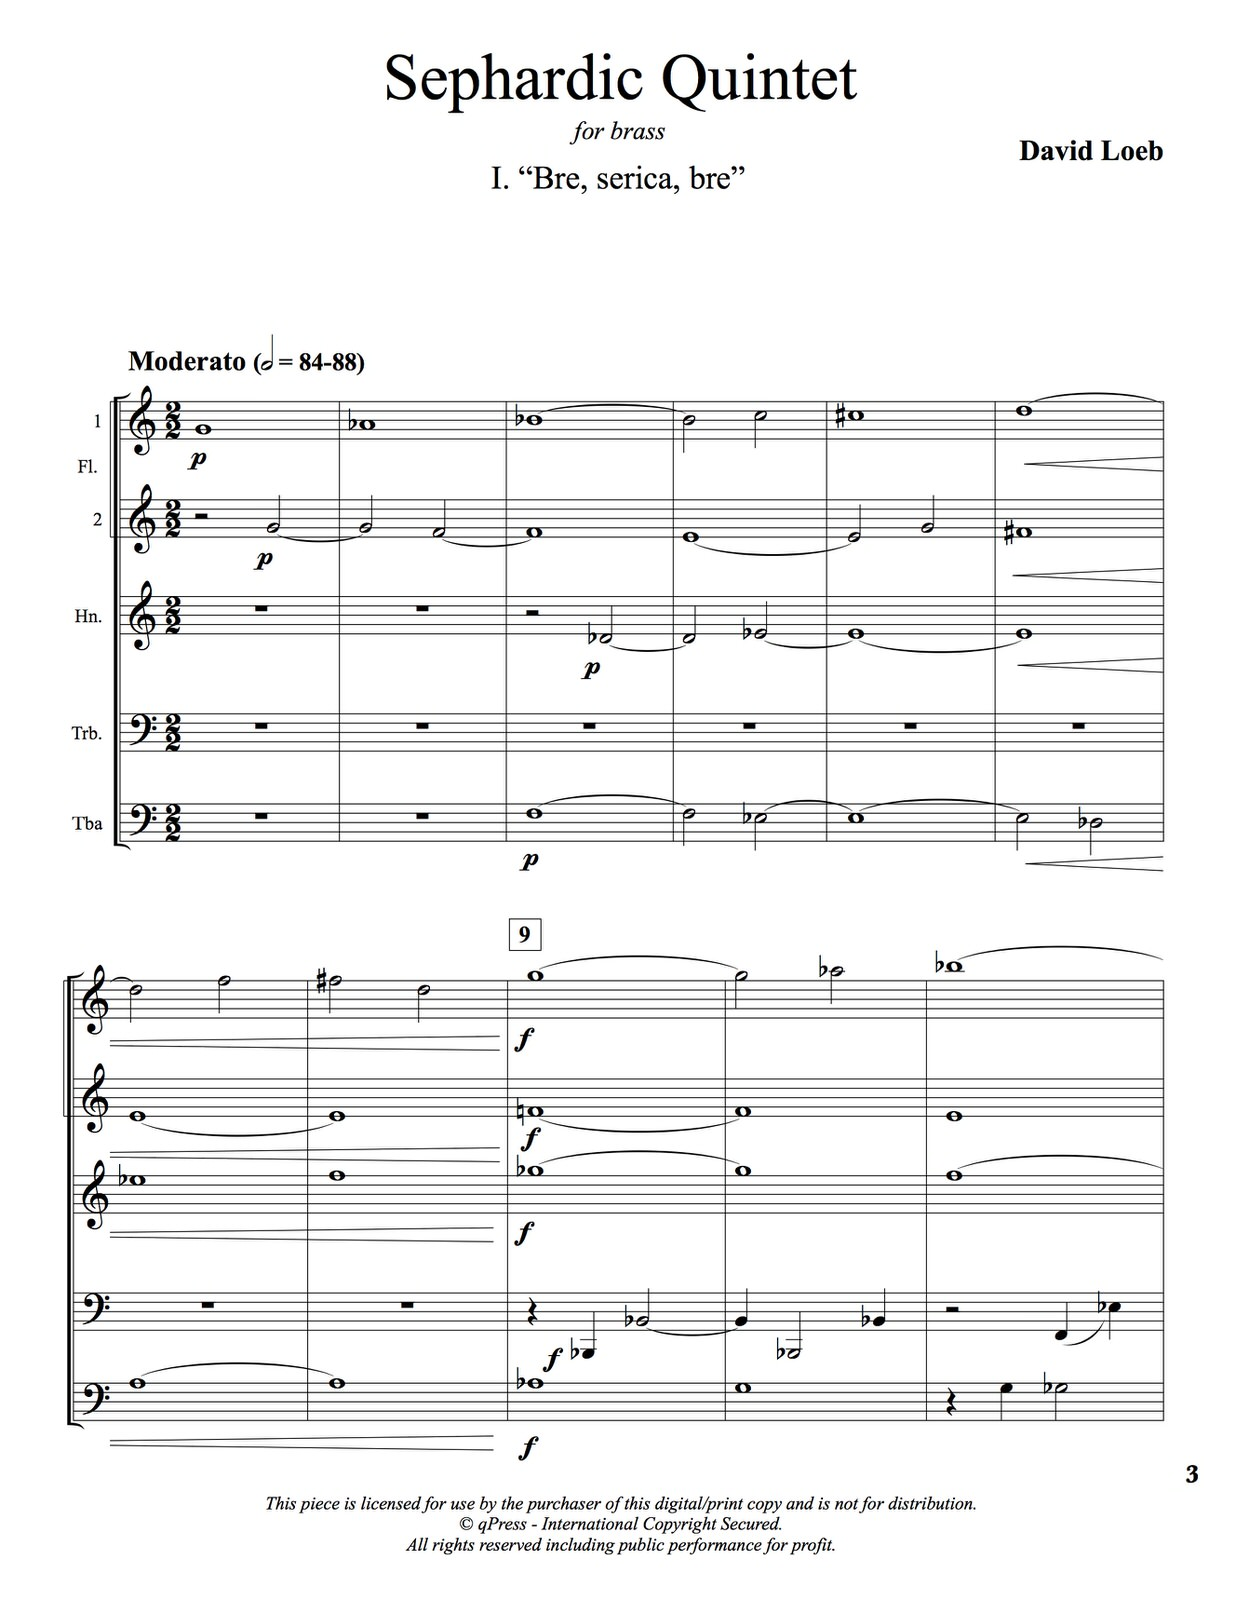 Sephardic Quintet for Brass PDF